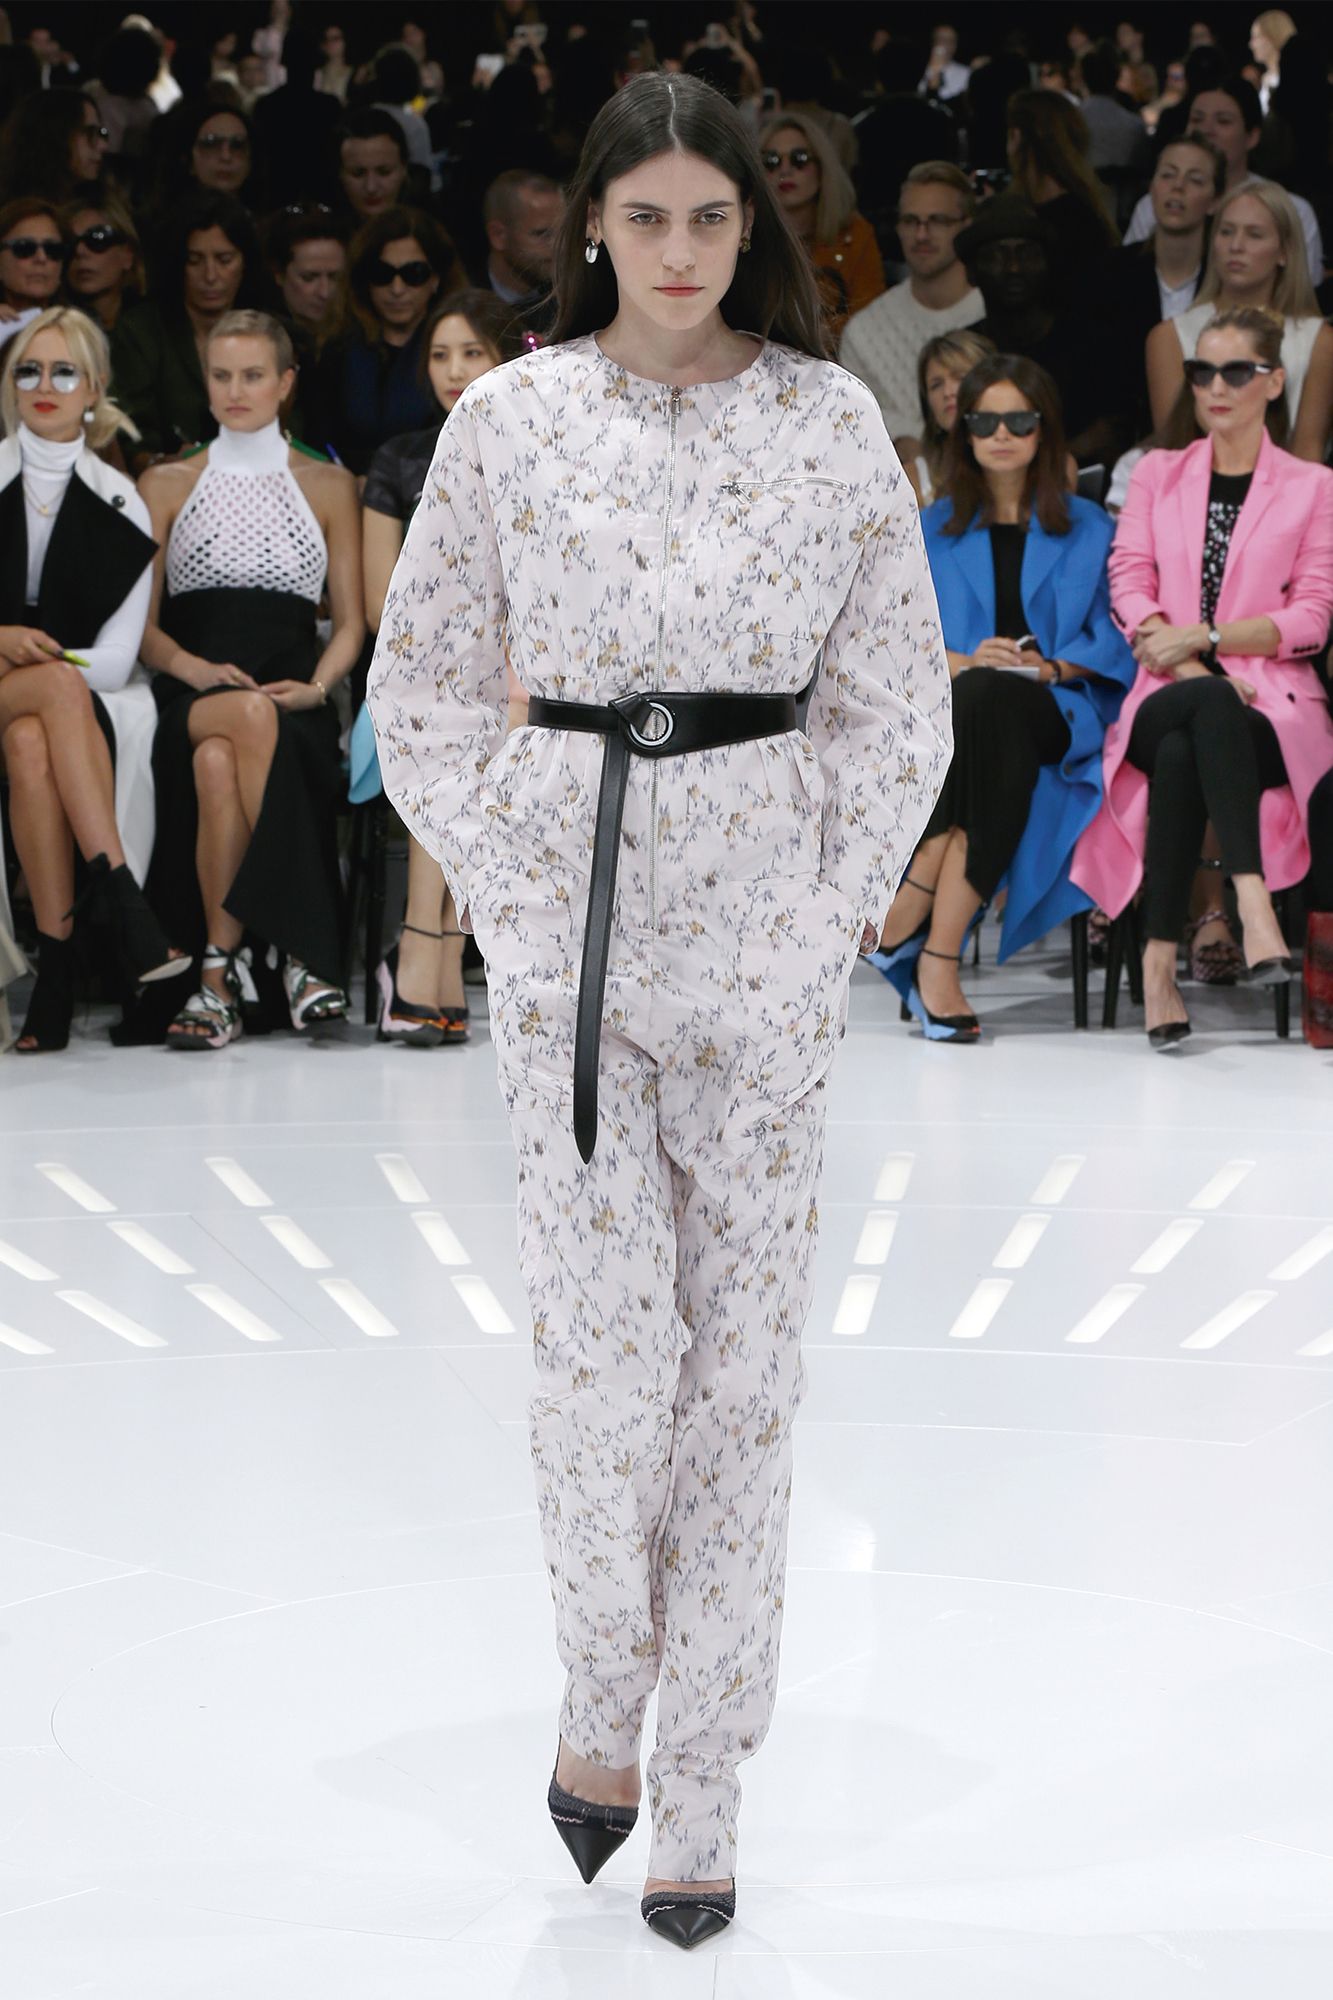 Christian Dior Haute Couture Spring-Summer Ready To Wear Dresses & Accessories Collection 2015-16 (17)